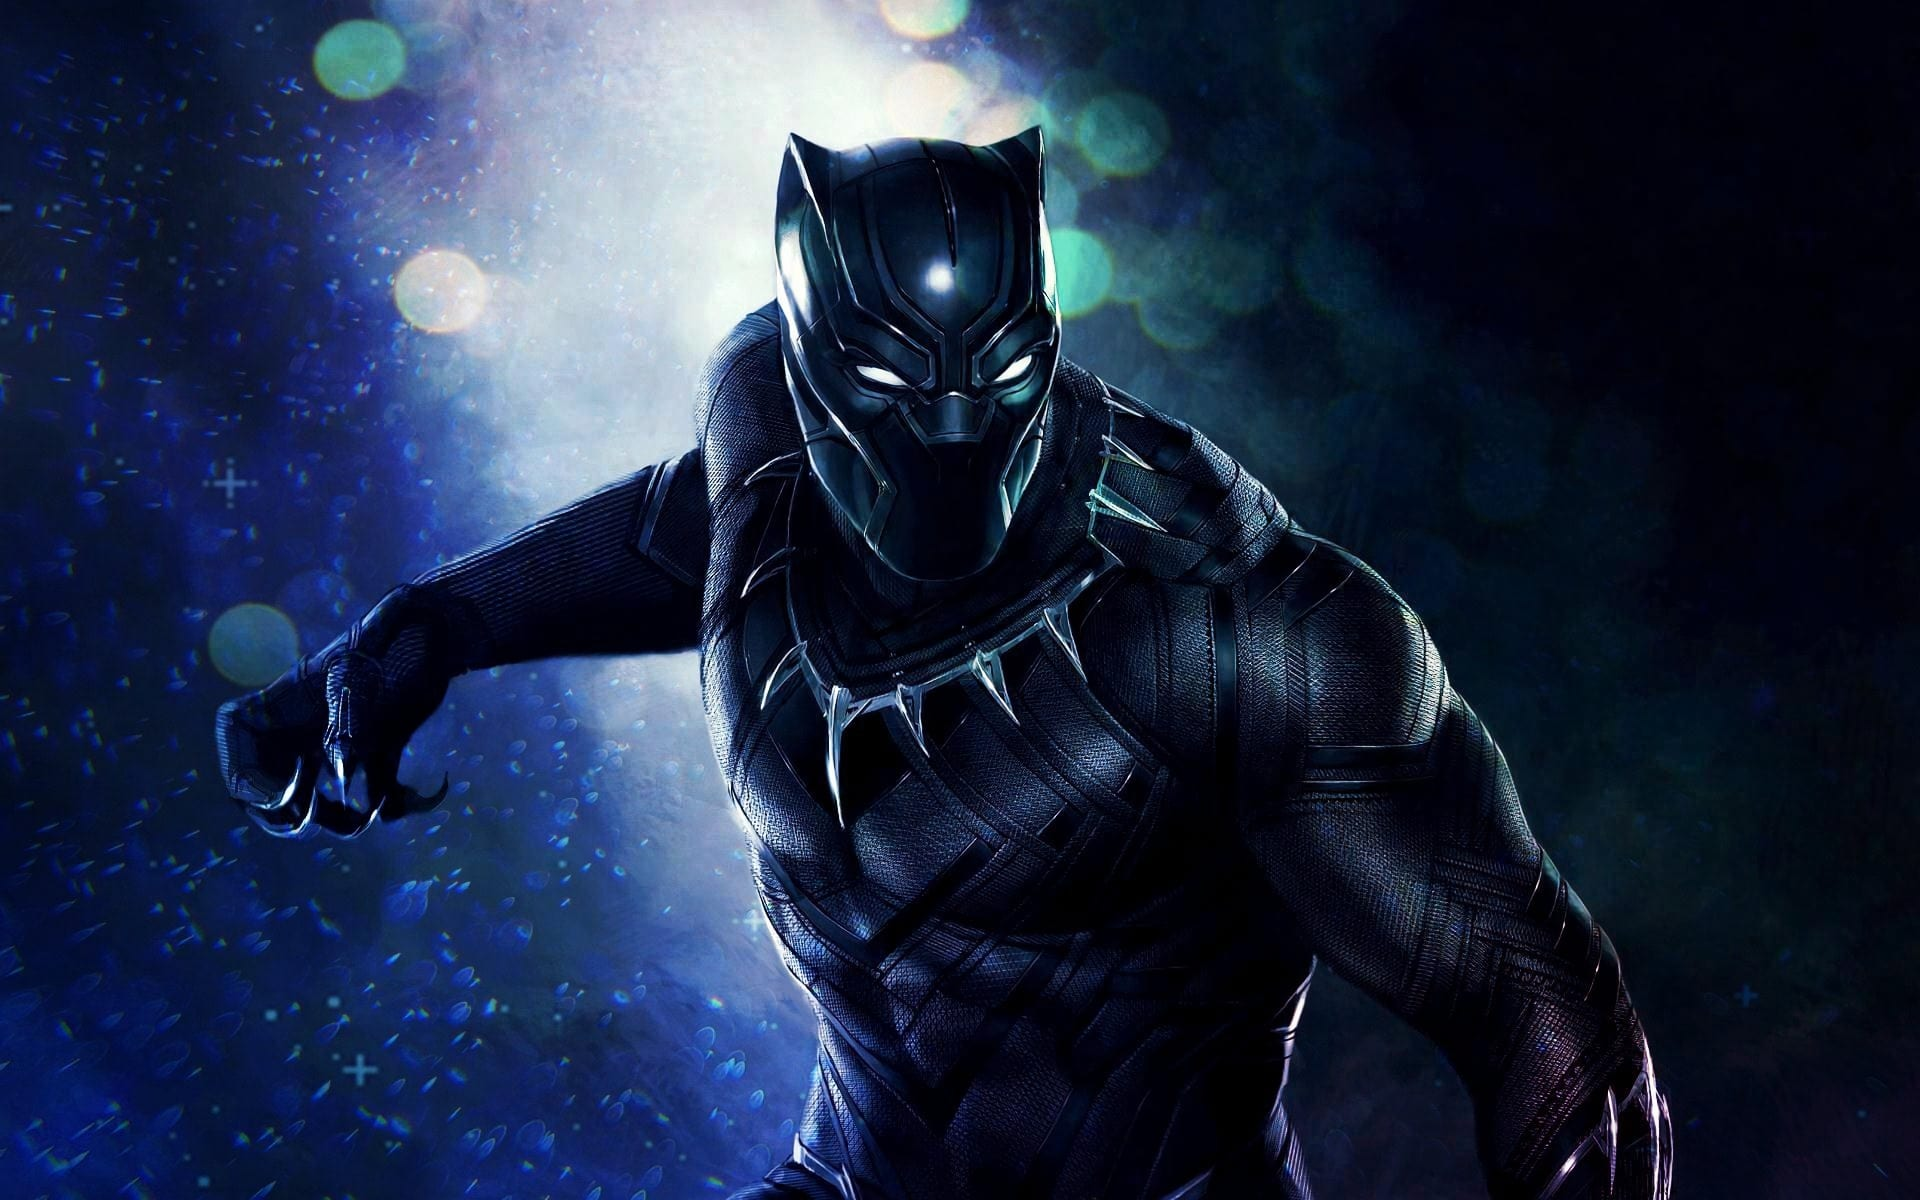 Marvel Cinematic Universe: Black Panther